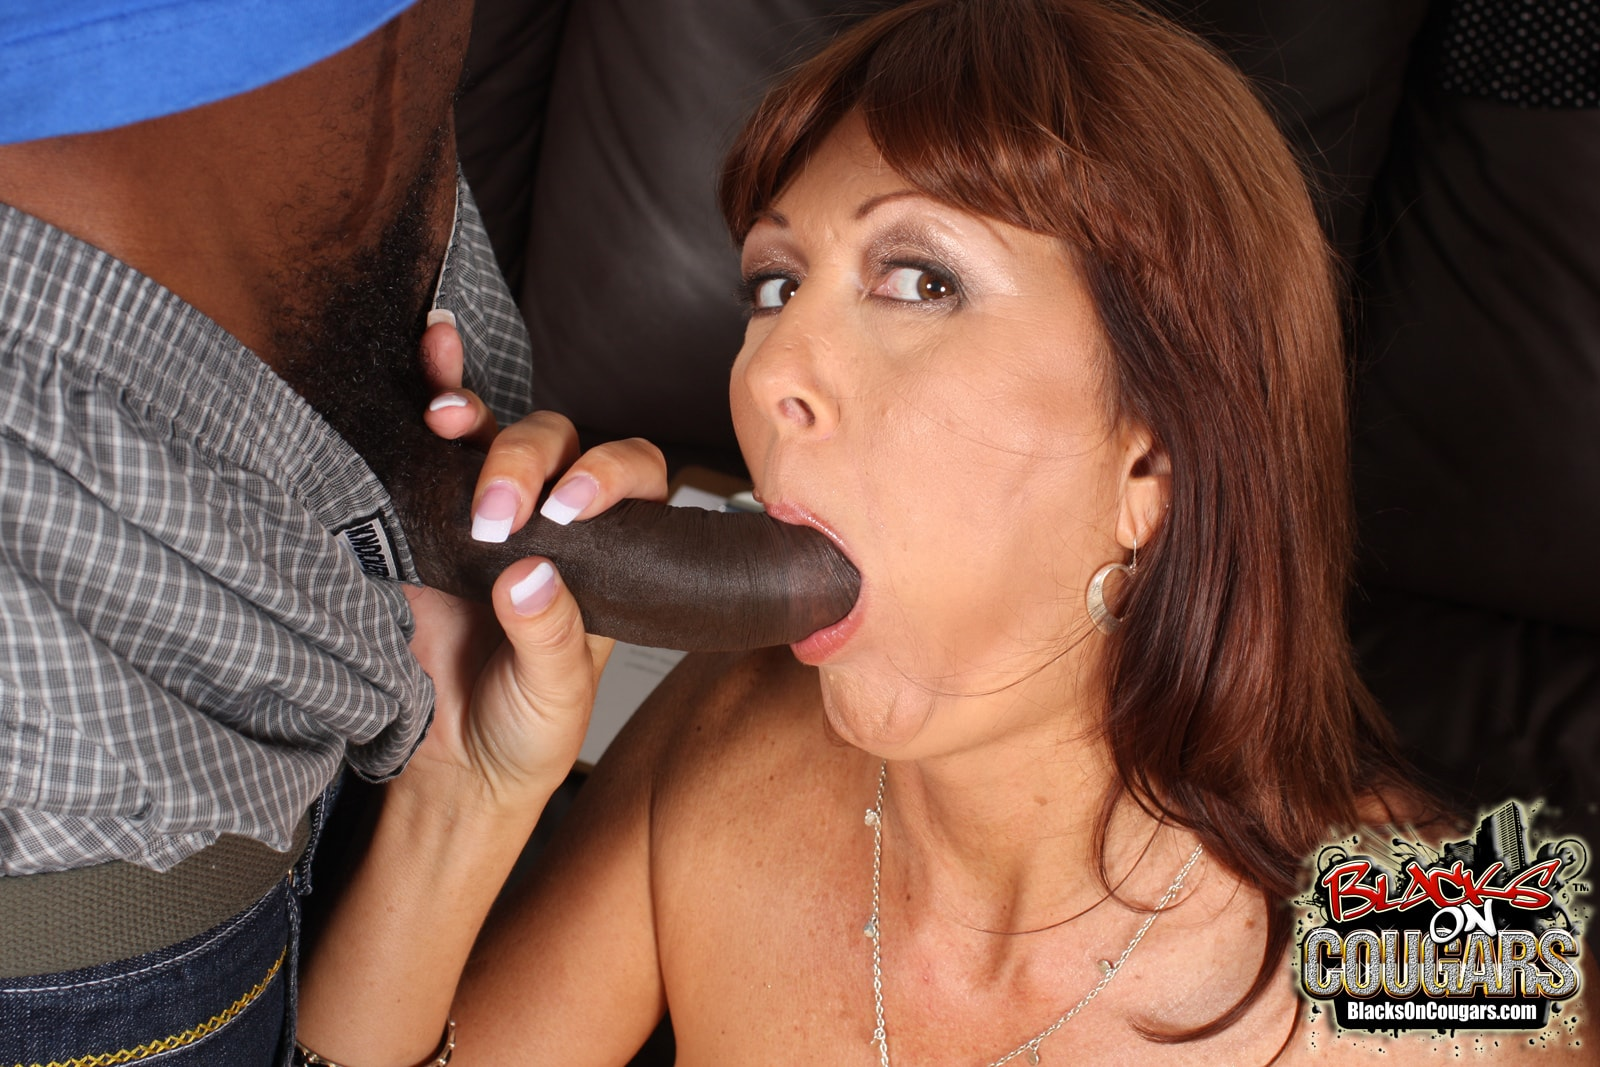 Dogfart '- Blacks On Cougars' starring Desi Foxx (Photo 13)